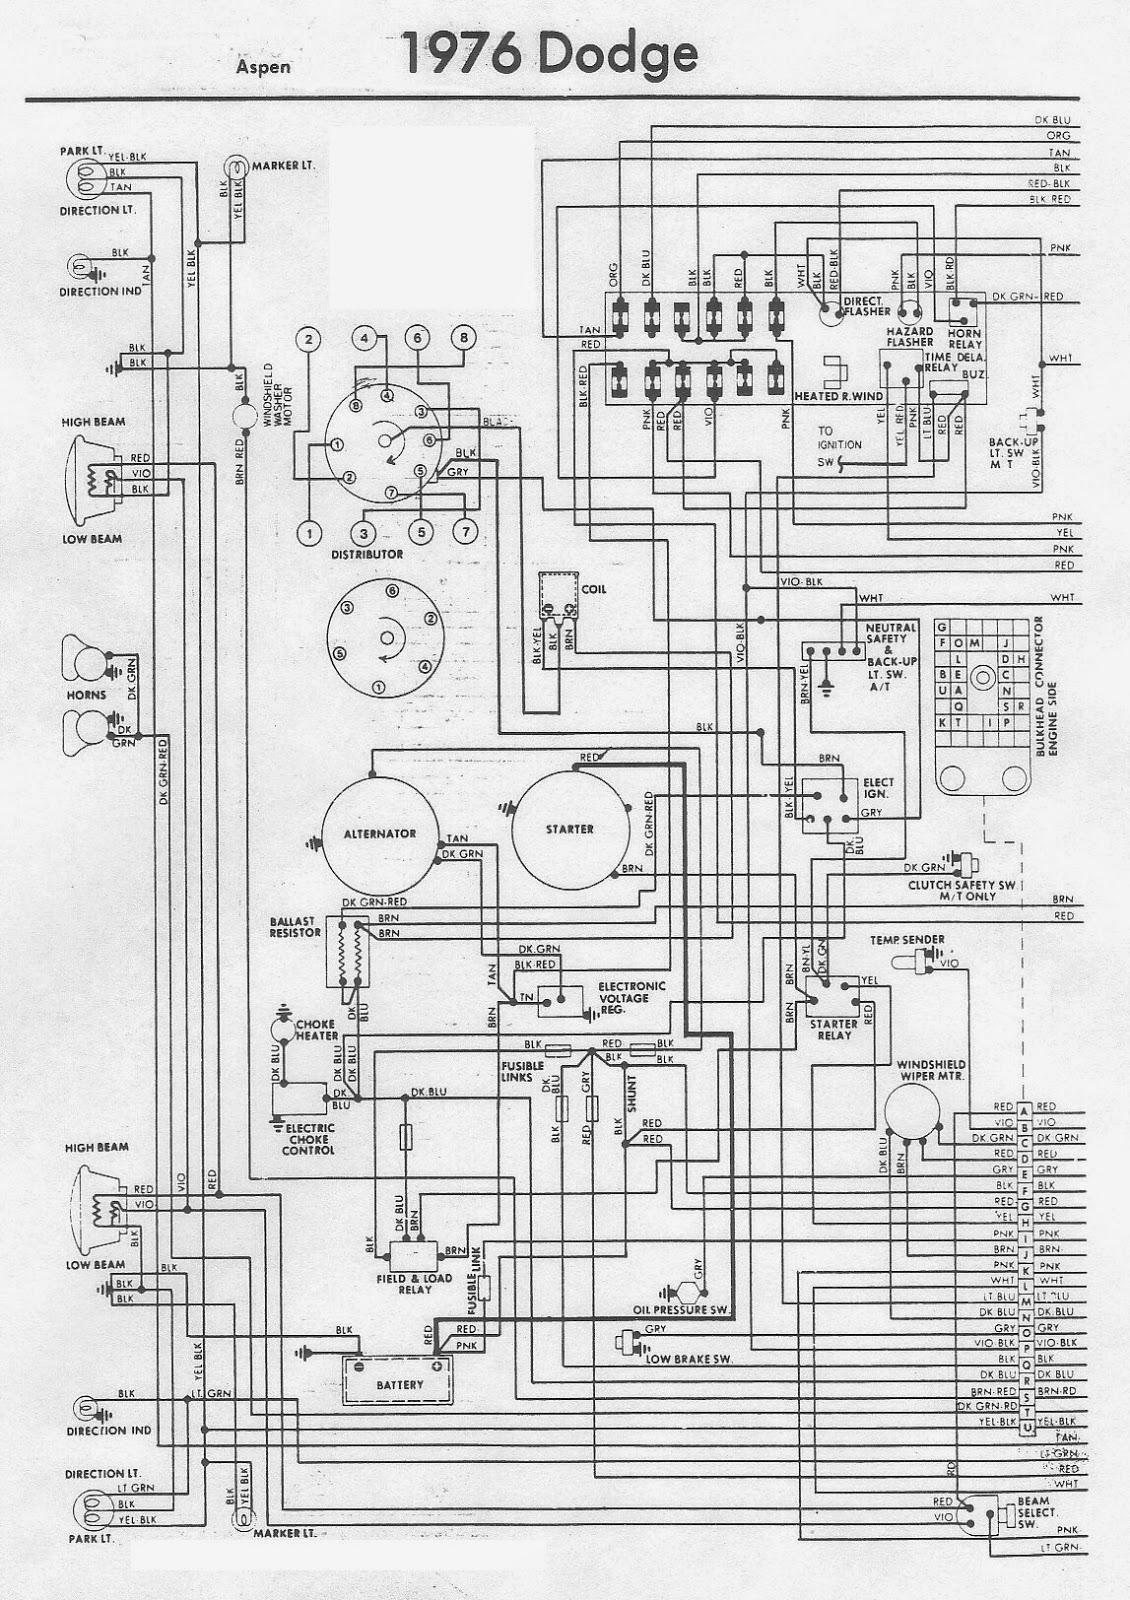 1988 Dodge Truck Wiring Diagram Electrical Schematics 1990 Ramcharger Ignition Example Distributor